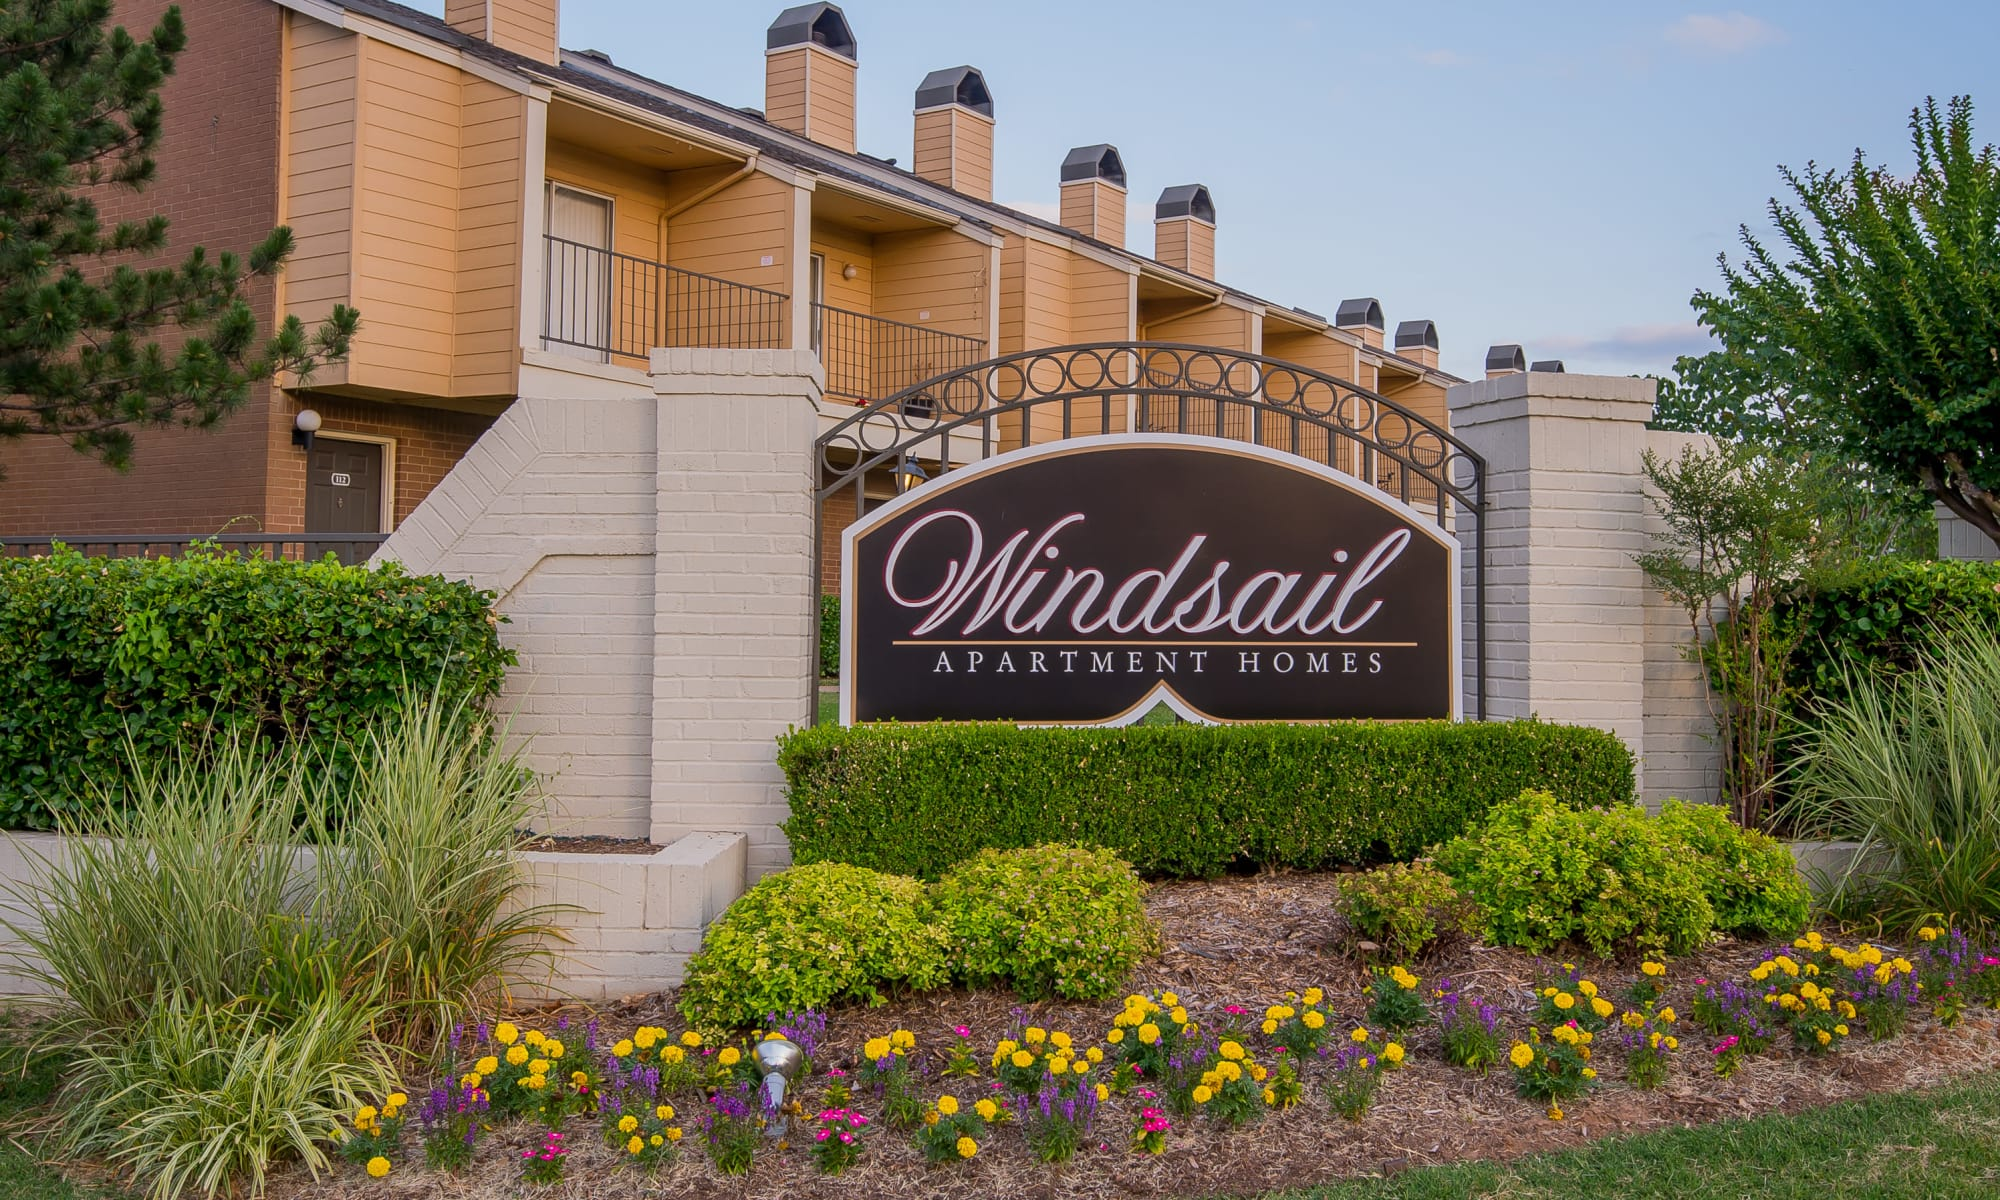 Windsail Apartments apartments in Tulsa, Oklahoma